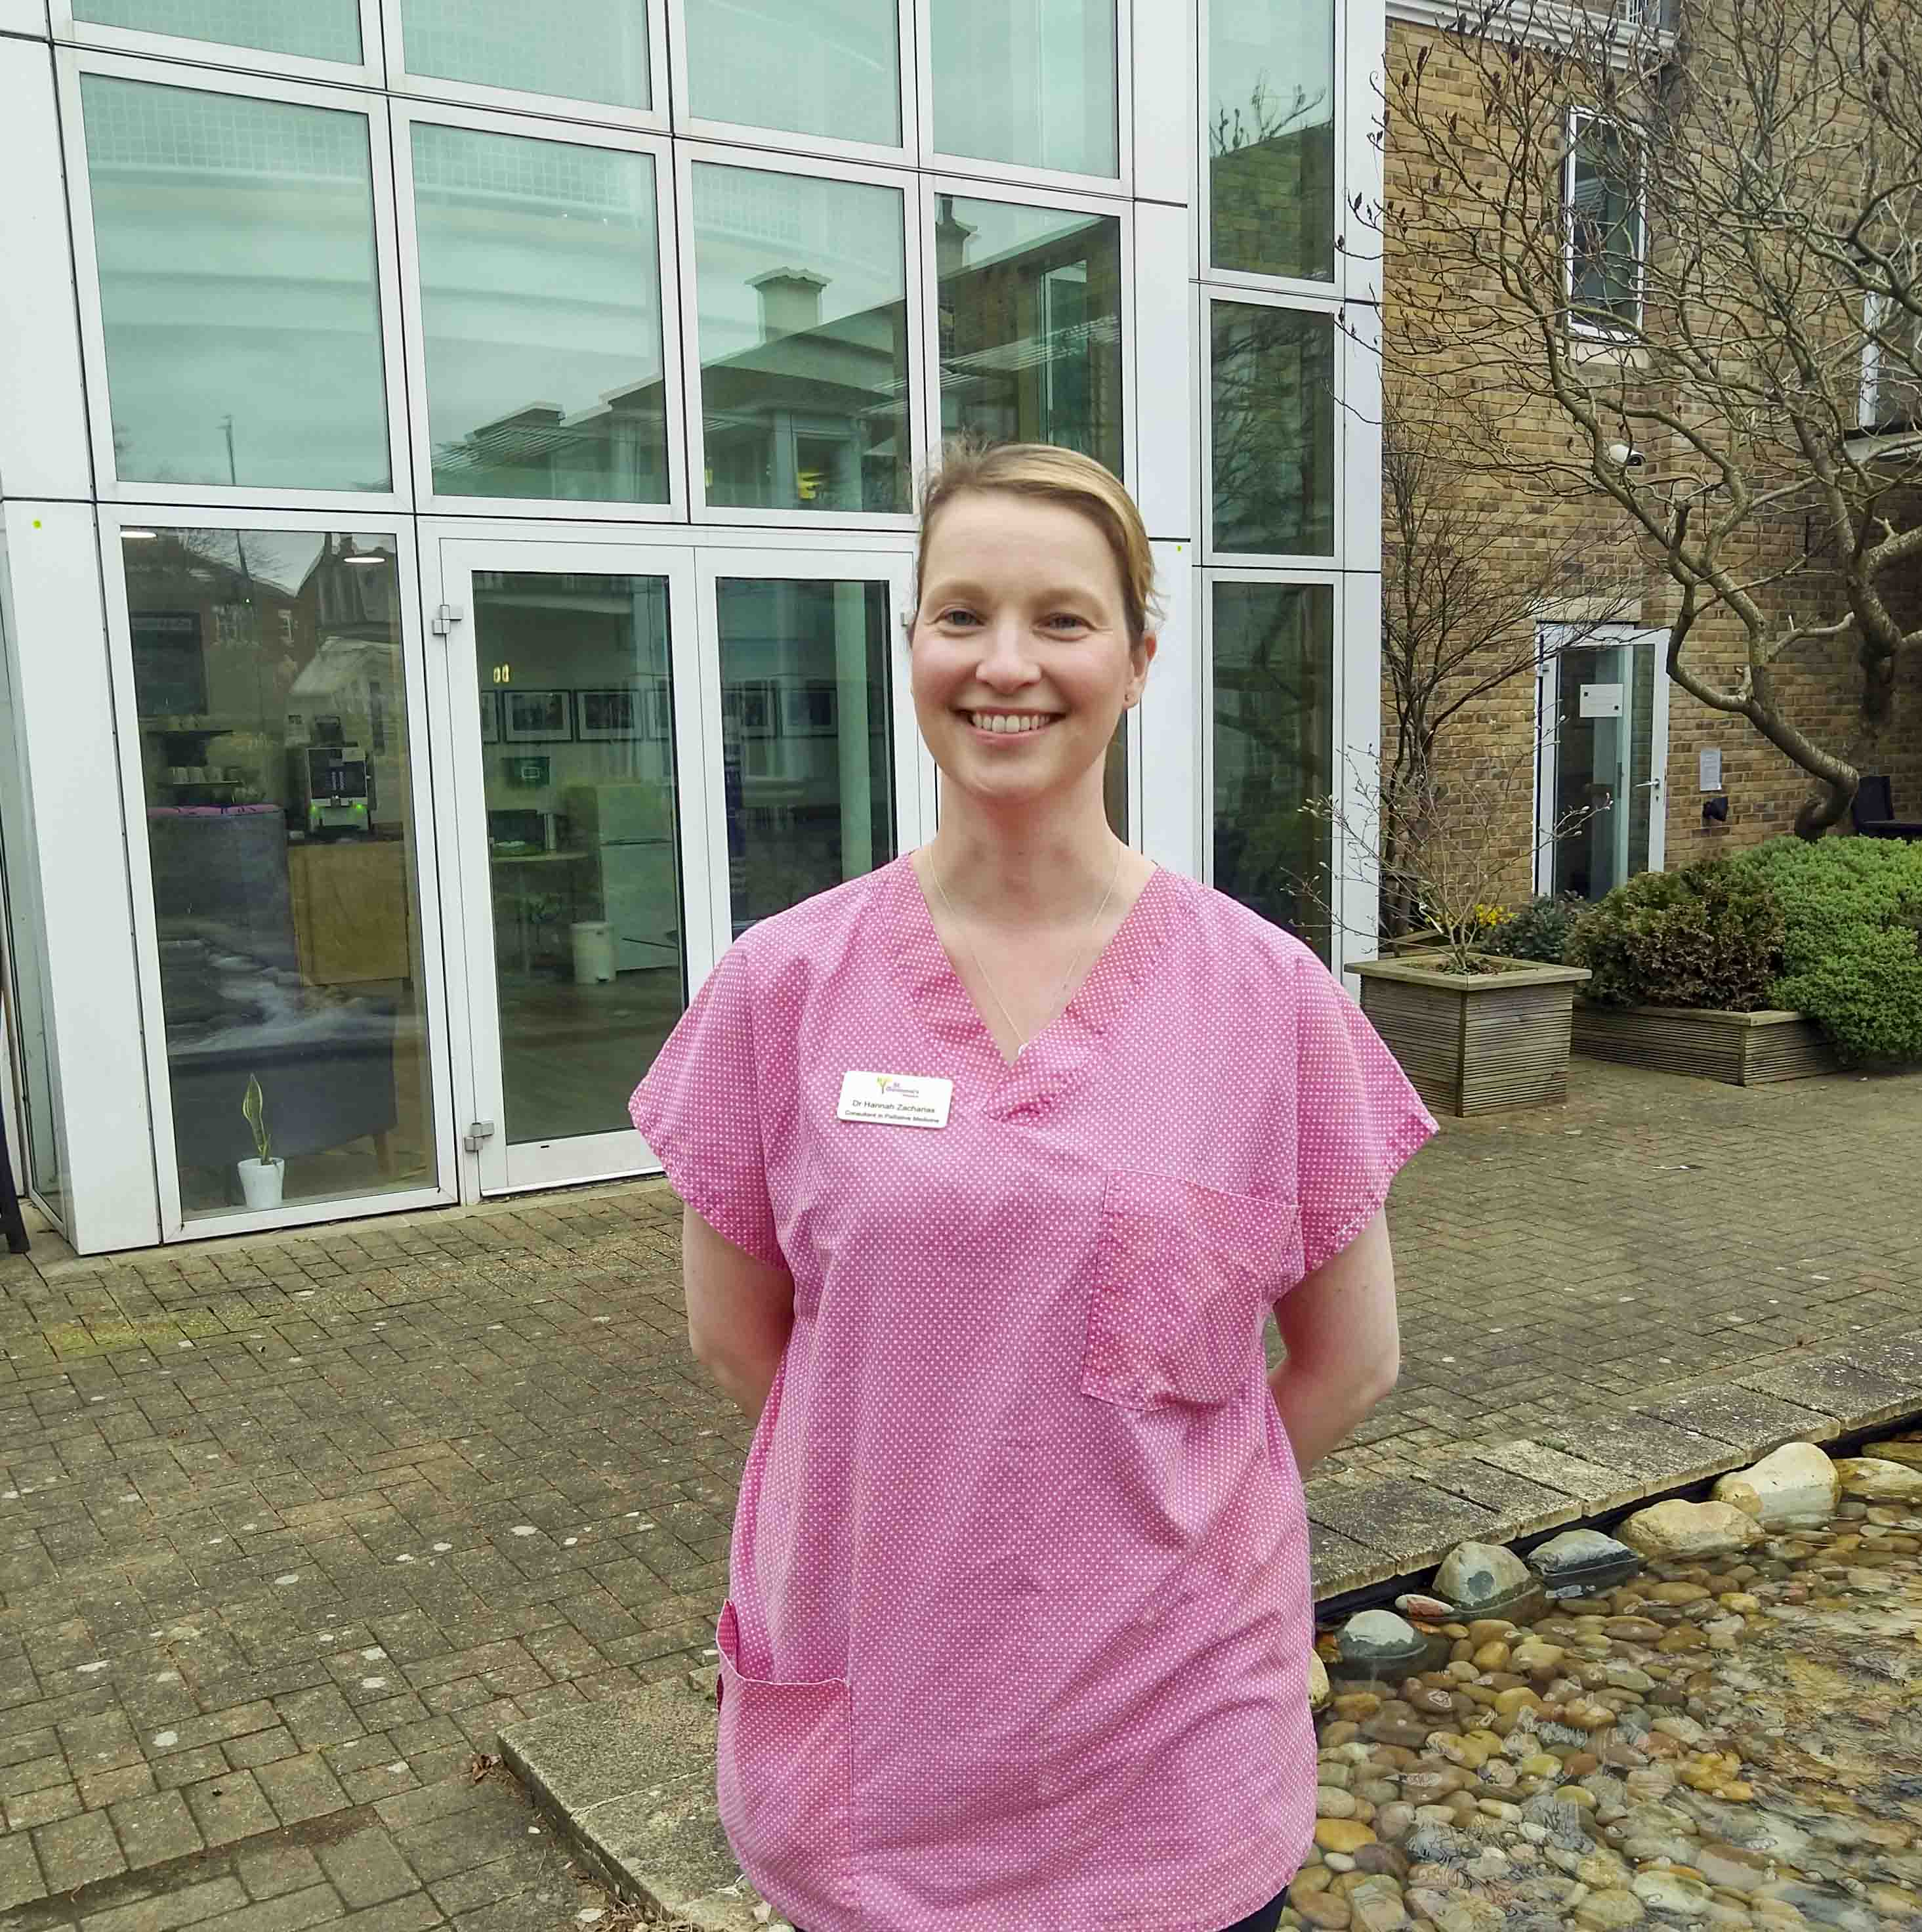 Doctor wearing a pink scrub top is standing in the hospice gardens and smiling